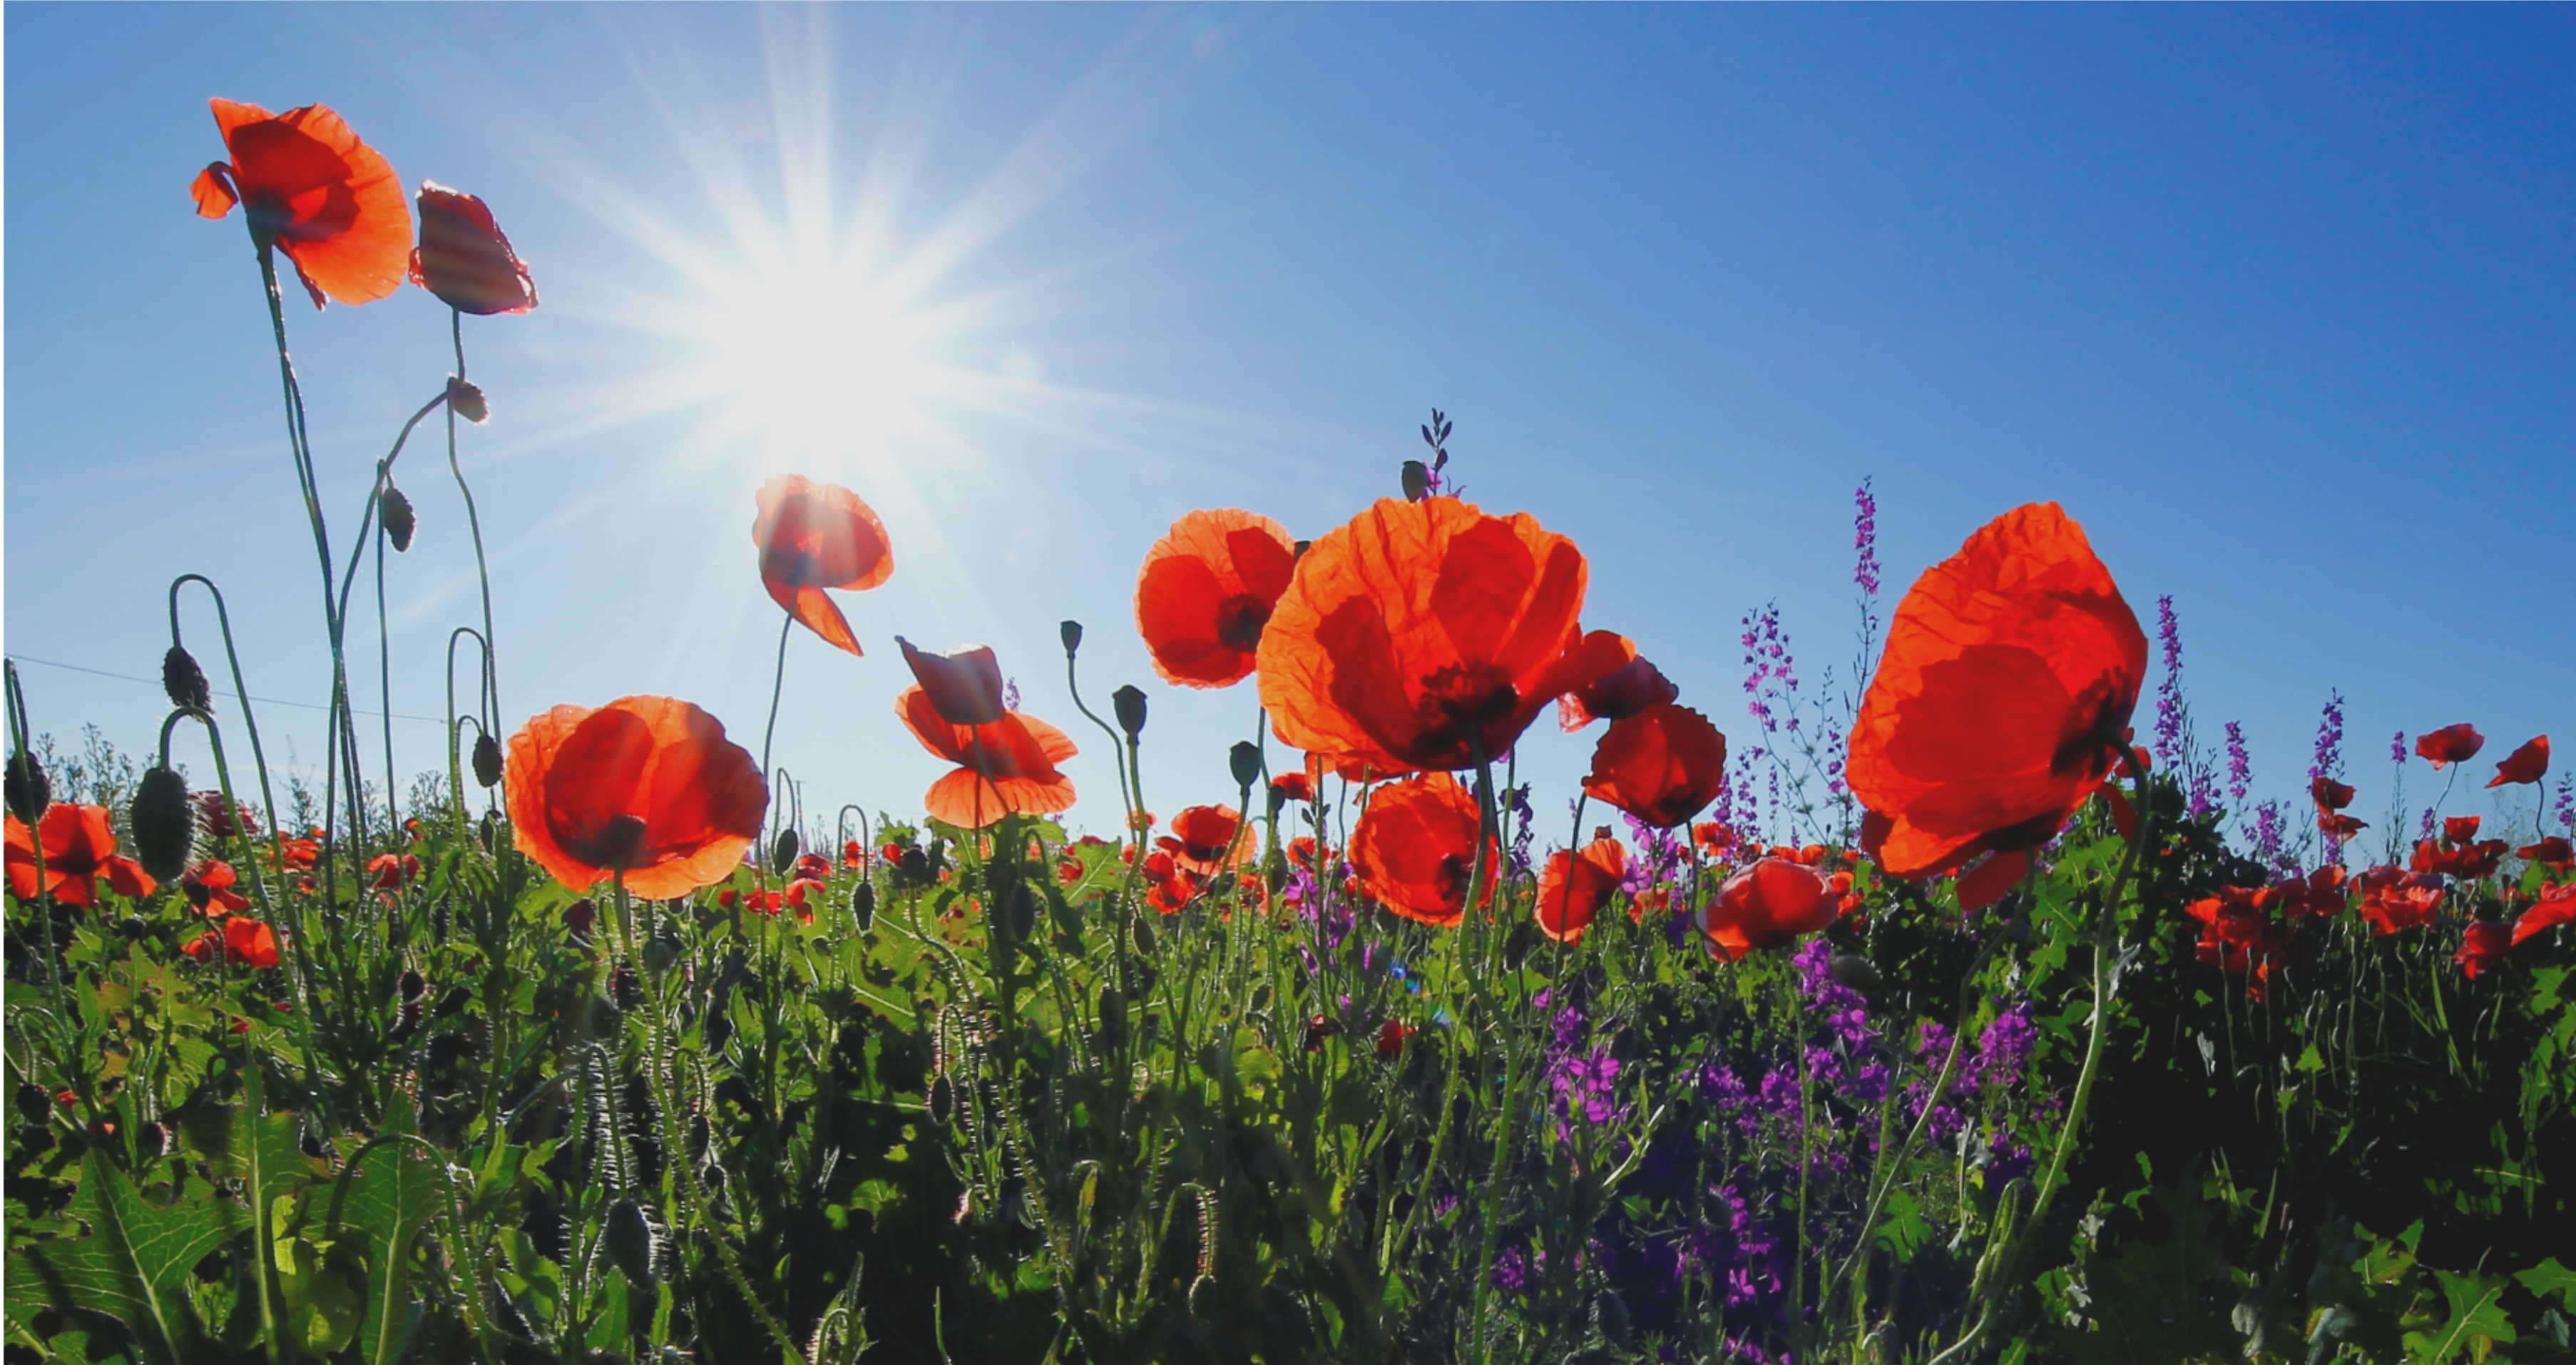 Blooming Poppy Trade | The Patrick Henry College Intelligencer